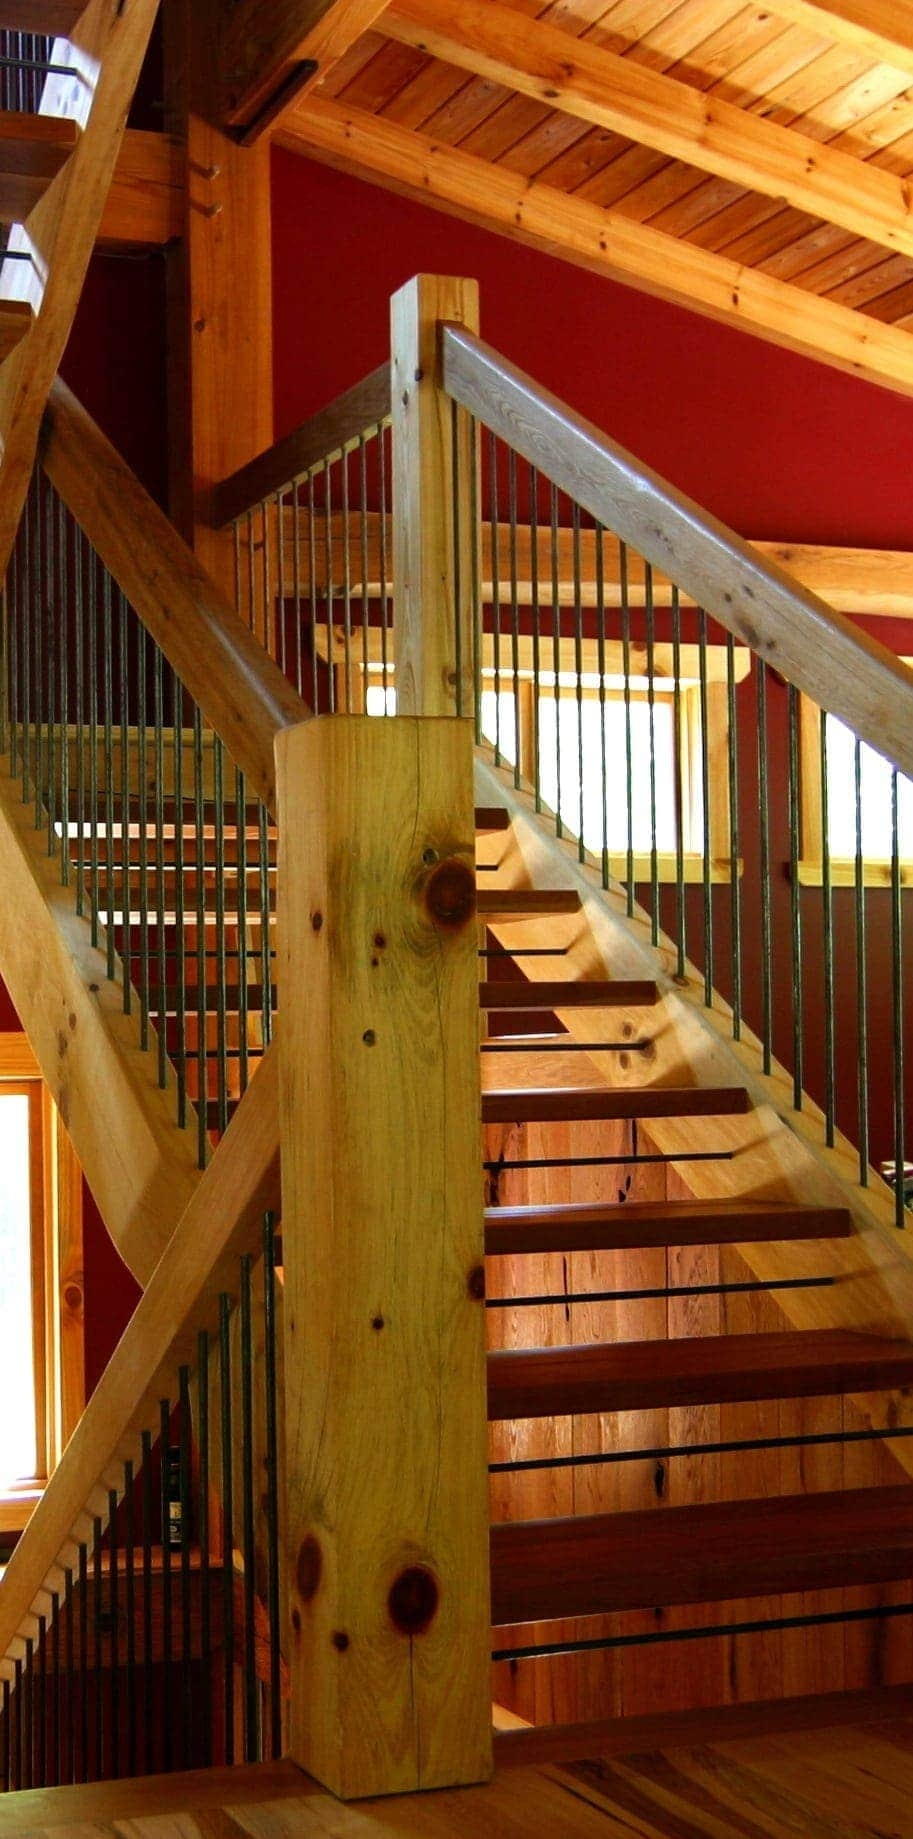 Types Of Timber Frame Stair Systems Timber Frame Hq   Tread Riser Staircase Design   Section   Concrete   Rcc   Marking   Metal